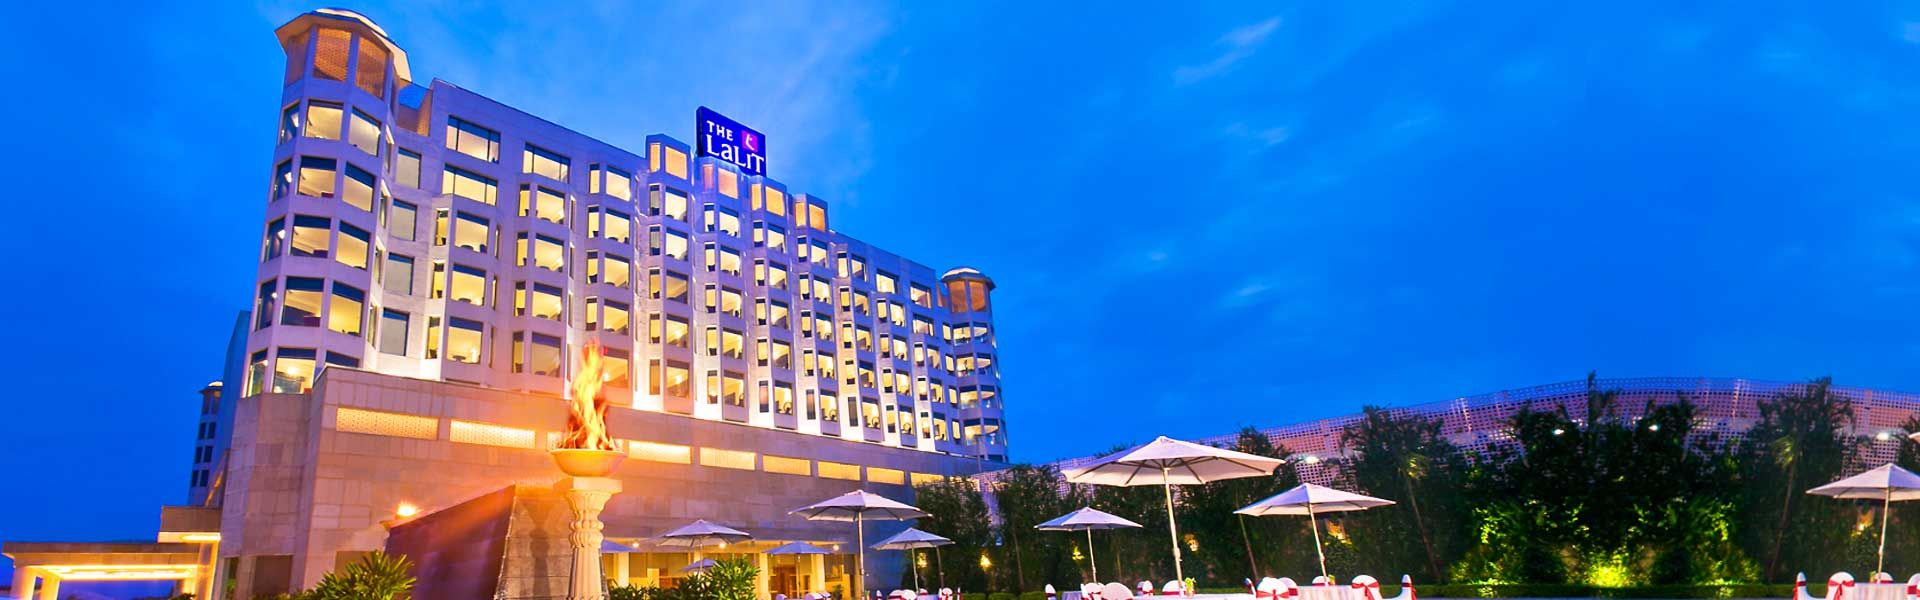 Pin By Shruti Sharma On The Lalit In 2019 Airport Hotel Hotels